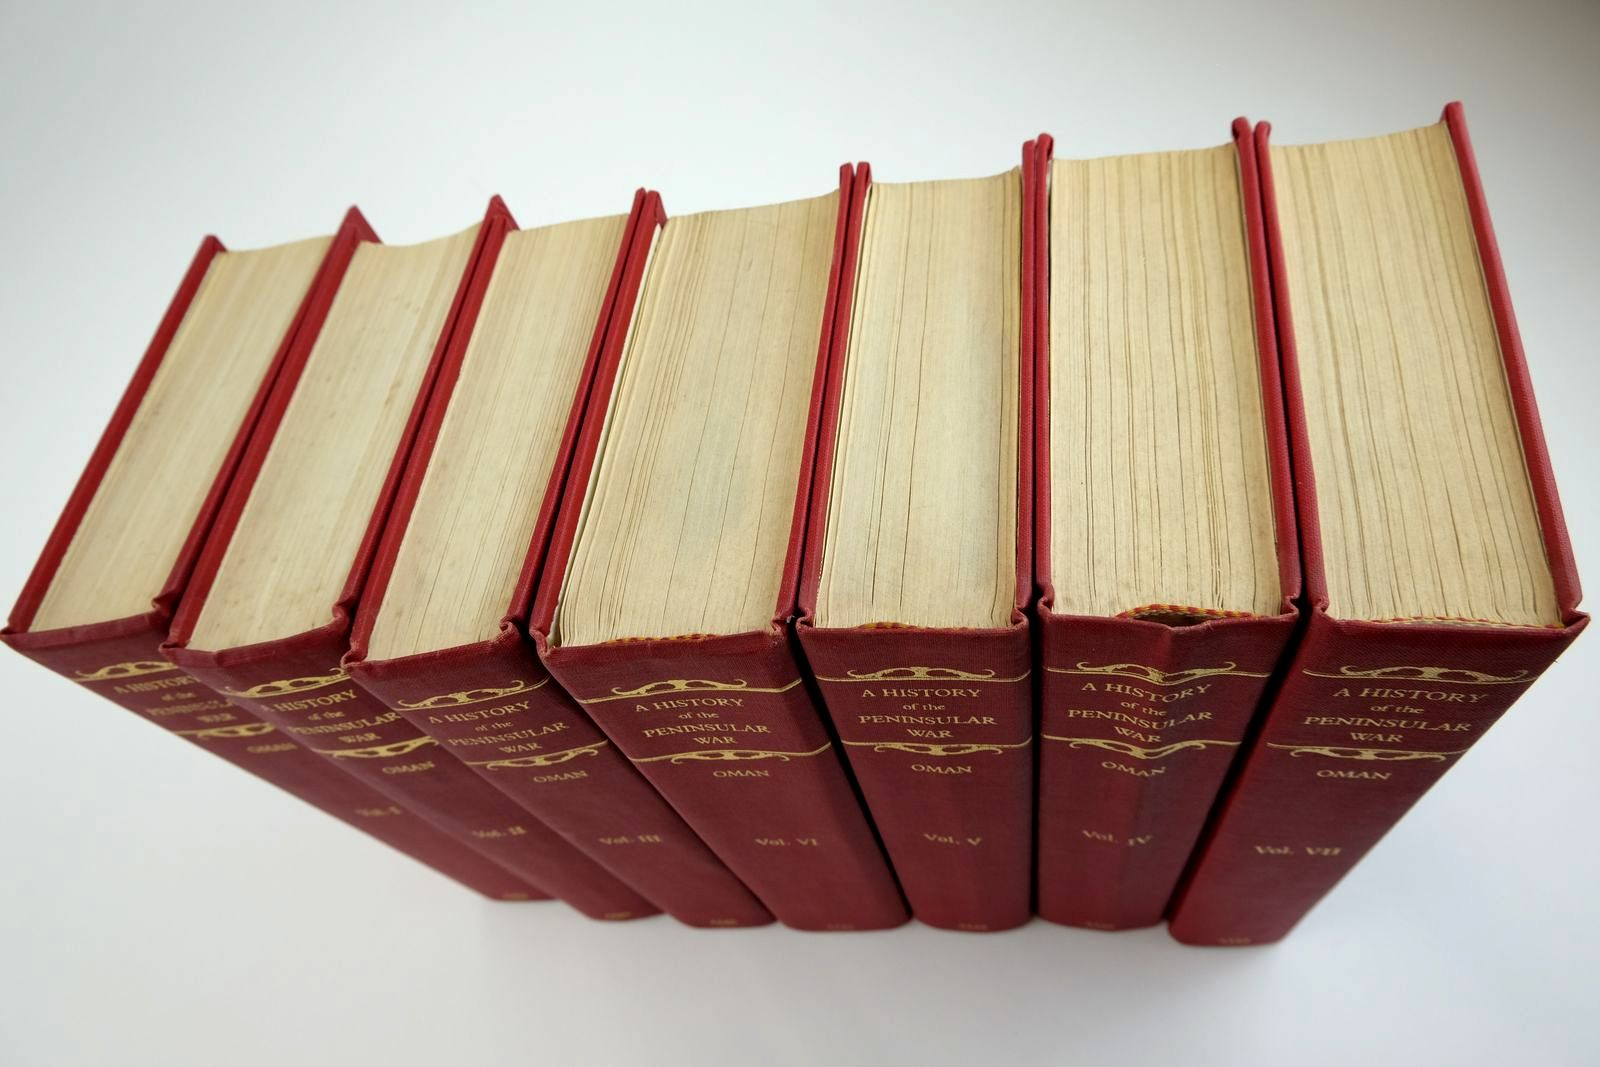 Photo of A HISTORY OF THE PENINSULAR WAR (7 VOLUMES) written by Oman, Sir Charles published by AMS Press (STOCK CODE: 2133489)  for sale by Stella & Rose's Books